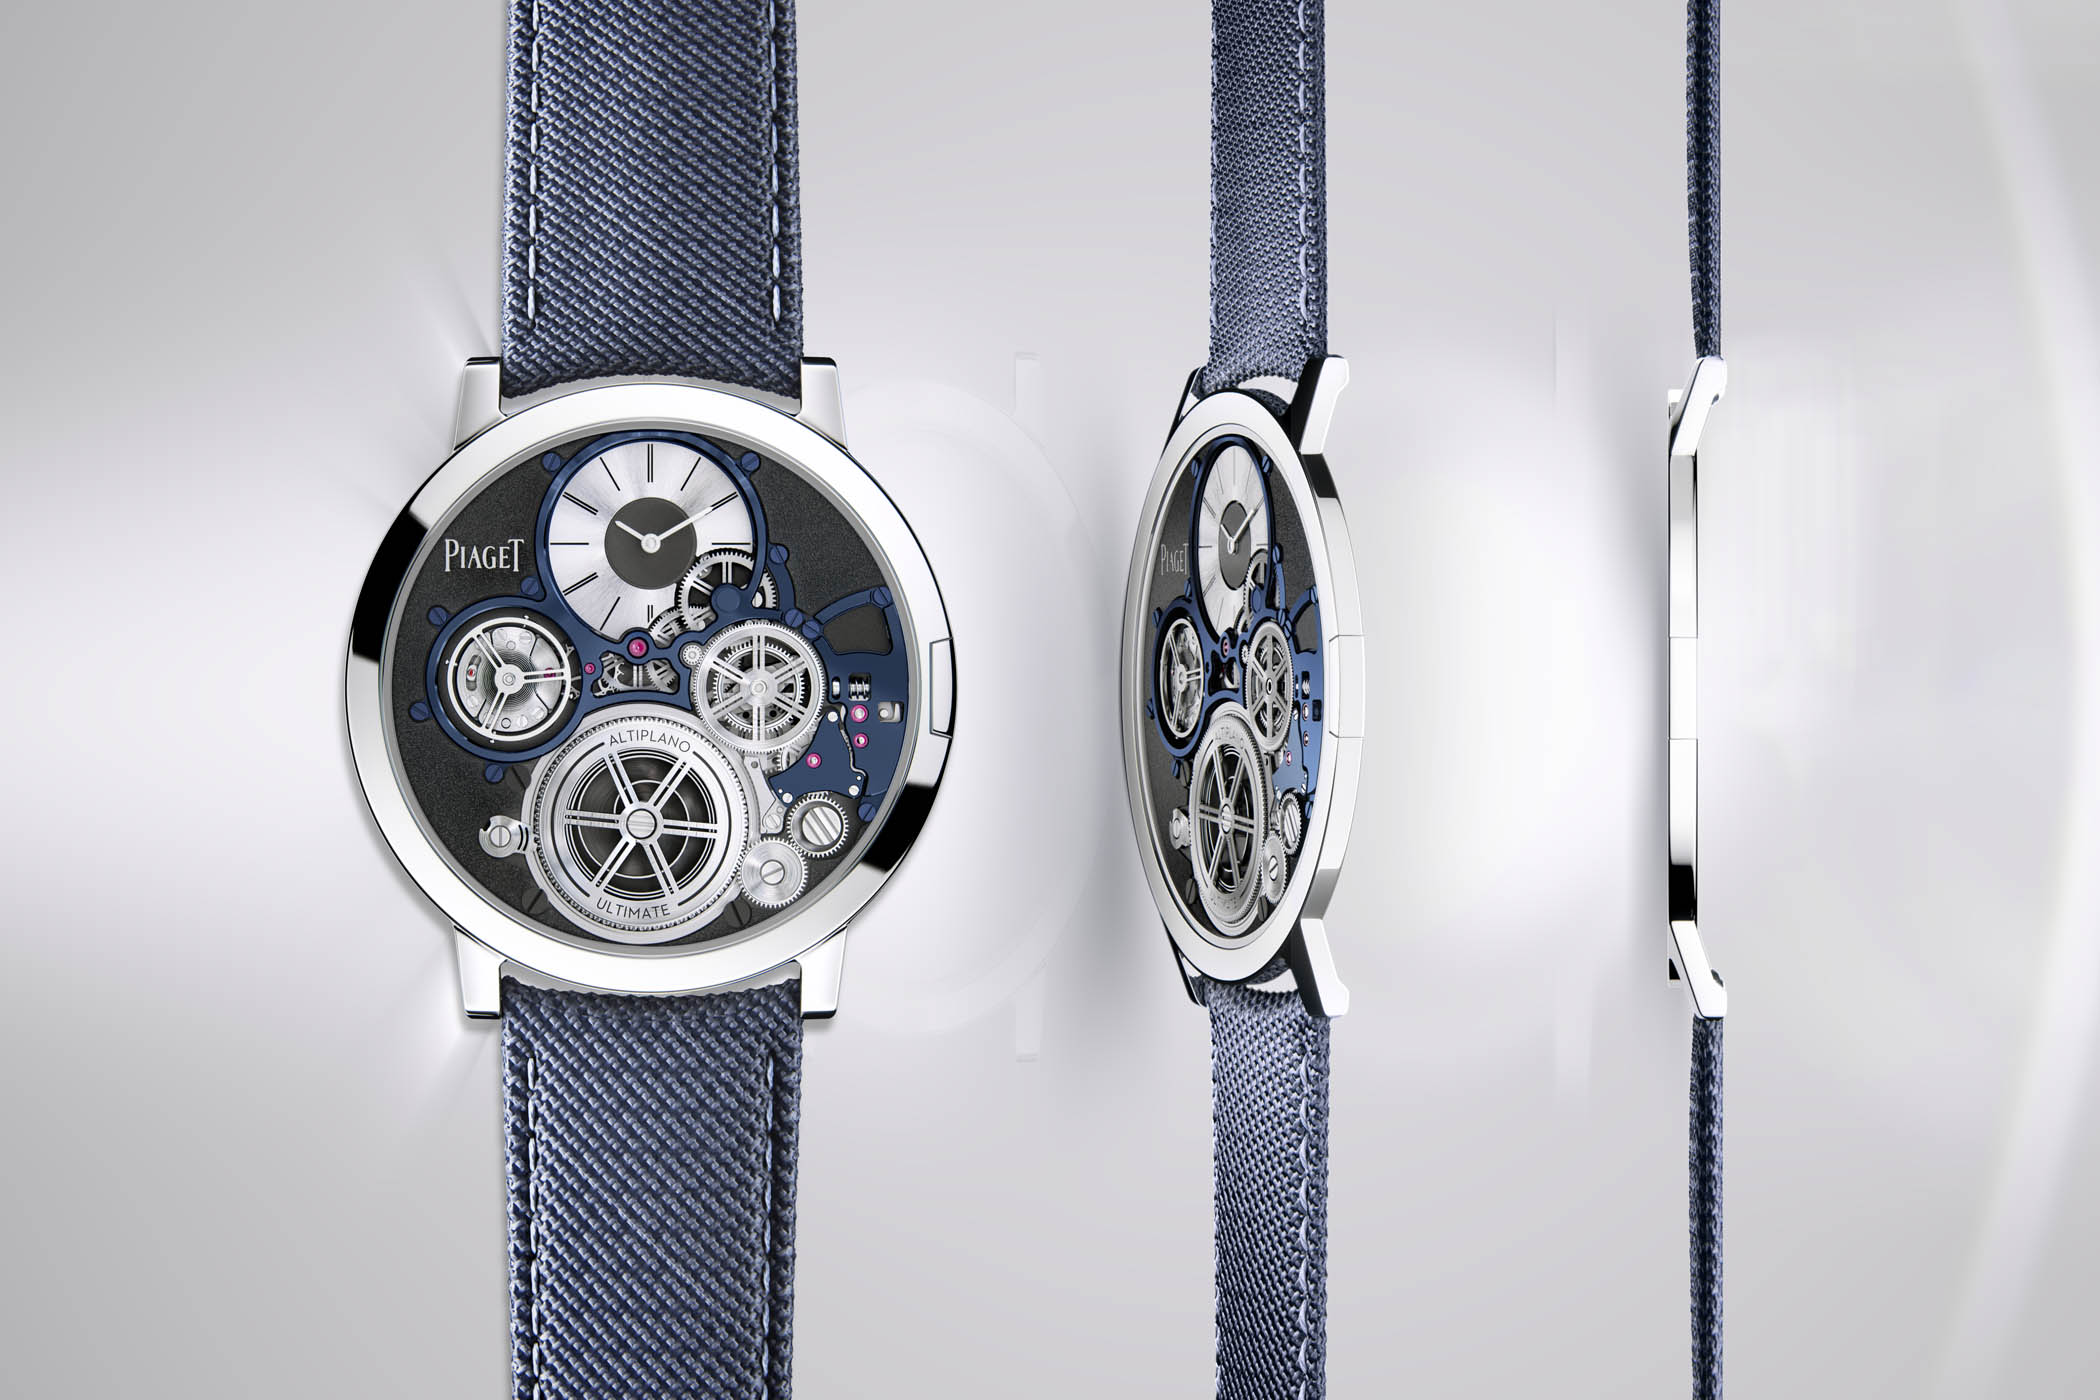 Piaget Altiplano Ultimate - thinnest mechanical watches in the world